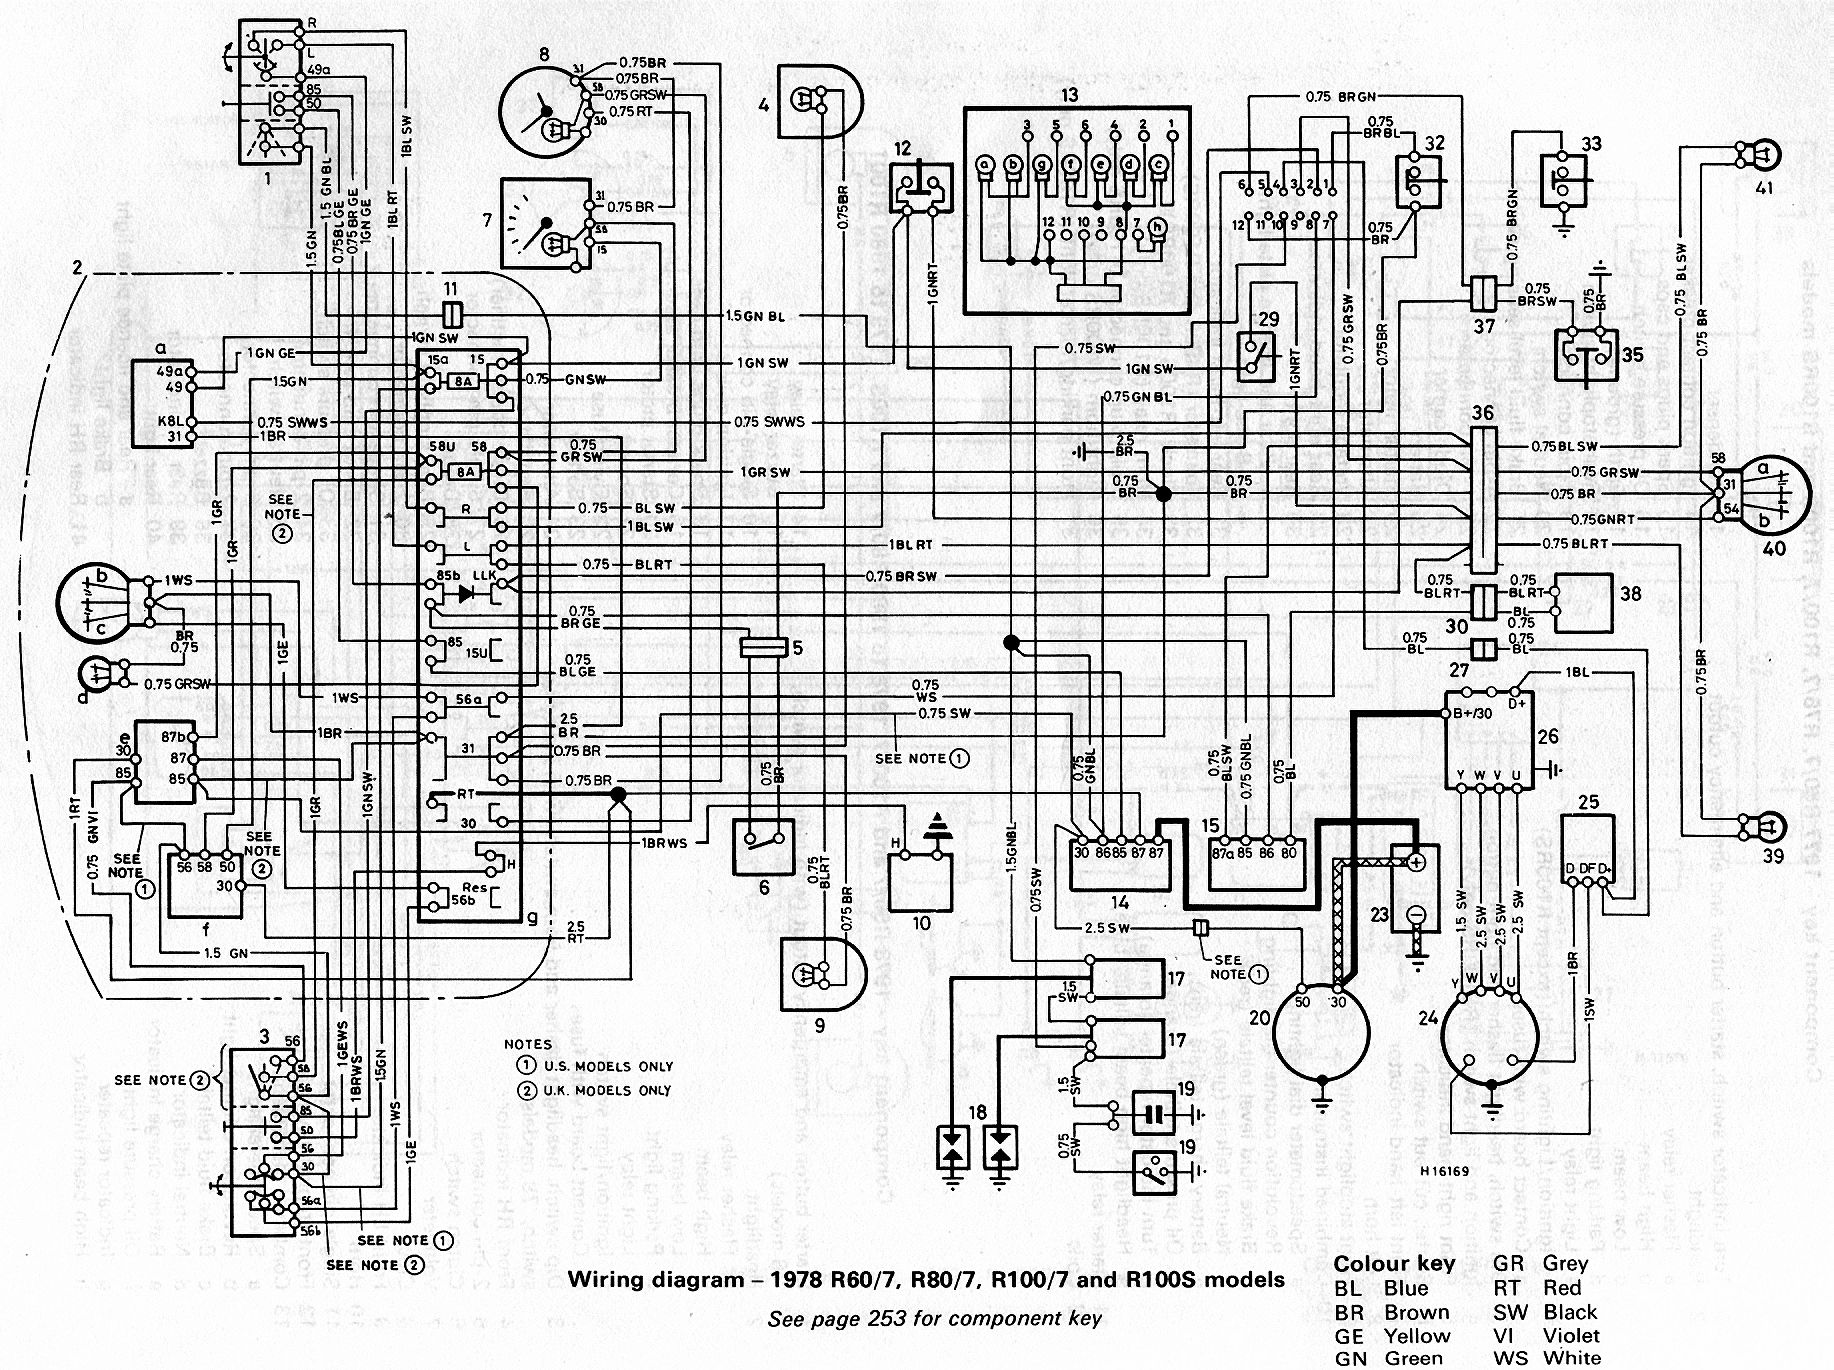 bmw 1984 r80/7 wiring diagram | Chis Wire Harness BMW R ...  Mini Cooper Ac Wiring Schematic on honda ac schematic, porsche 944 ac schematic, toyota ac schematic, ford bronco ac schematic,